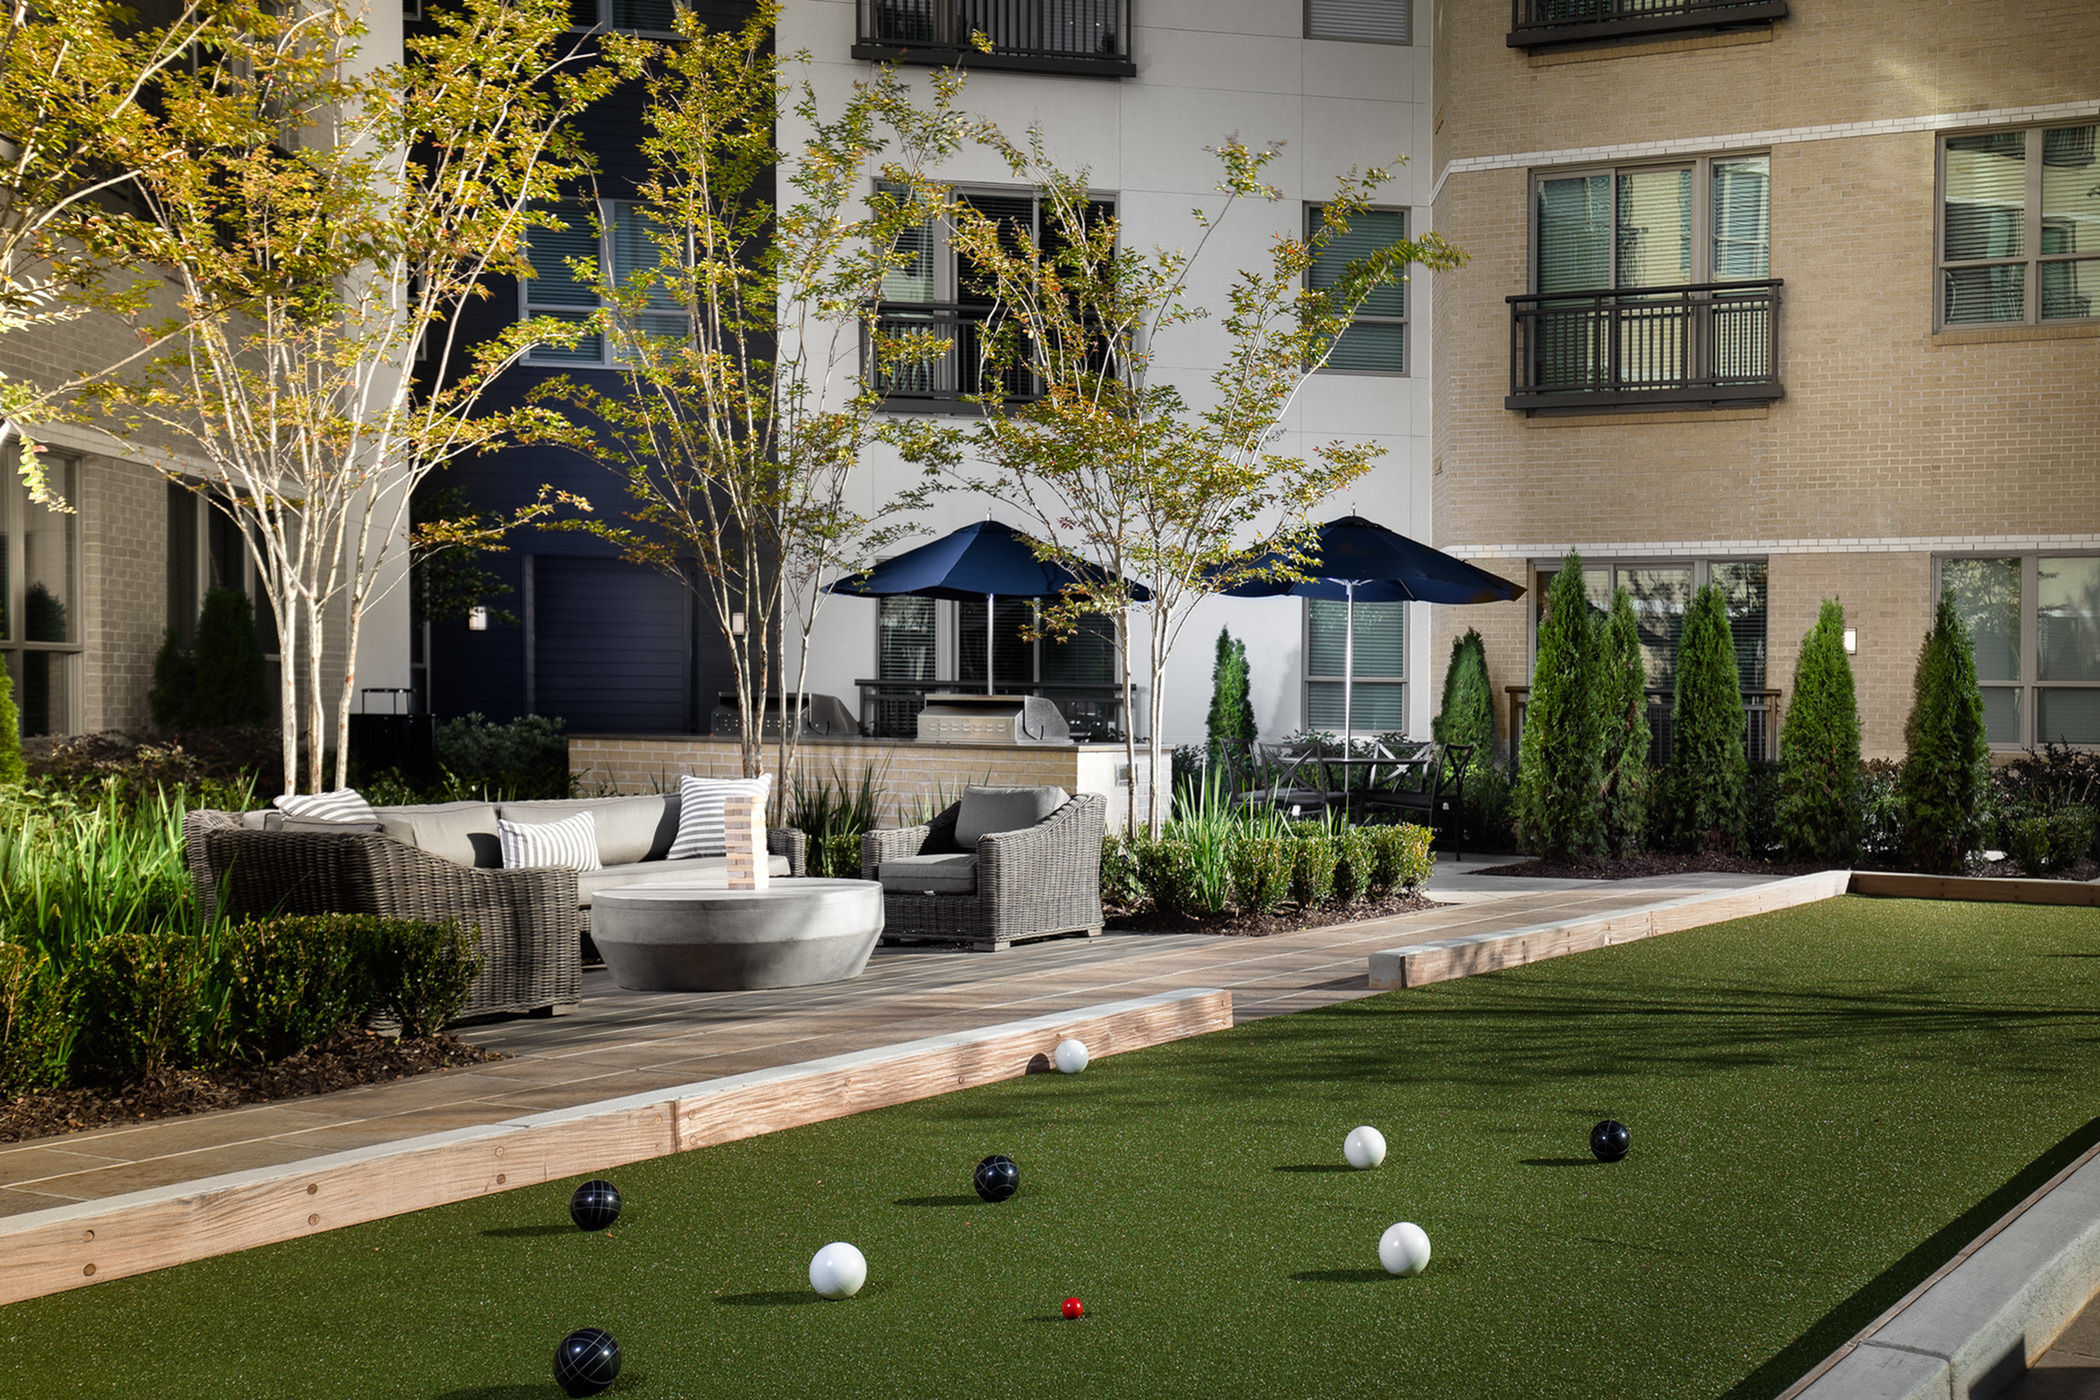 Expansive Resident Courtyard with Outdoor Ping Pong, Bocce Ball, Fountain Feature and Dining Areas at Hanover The LINC Brookhaven